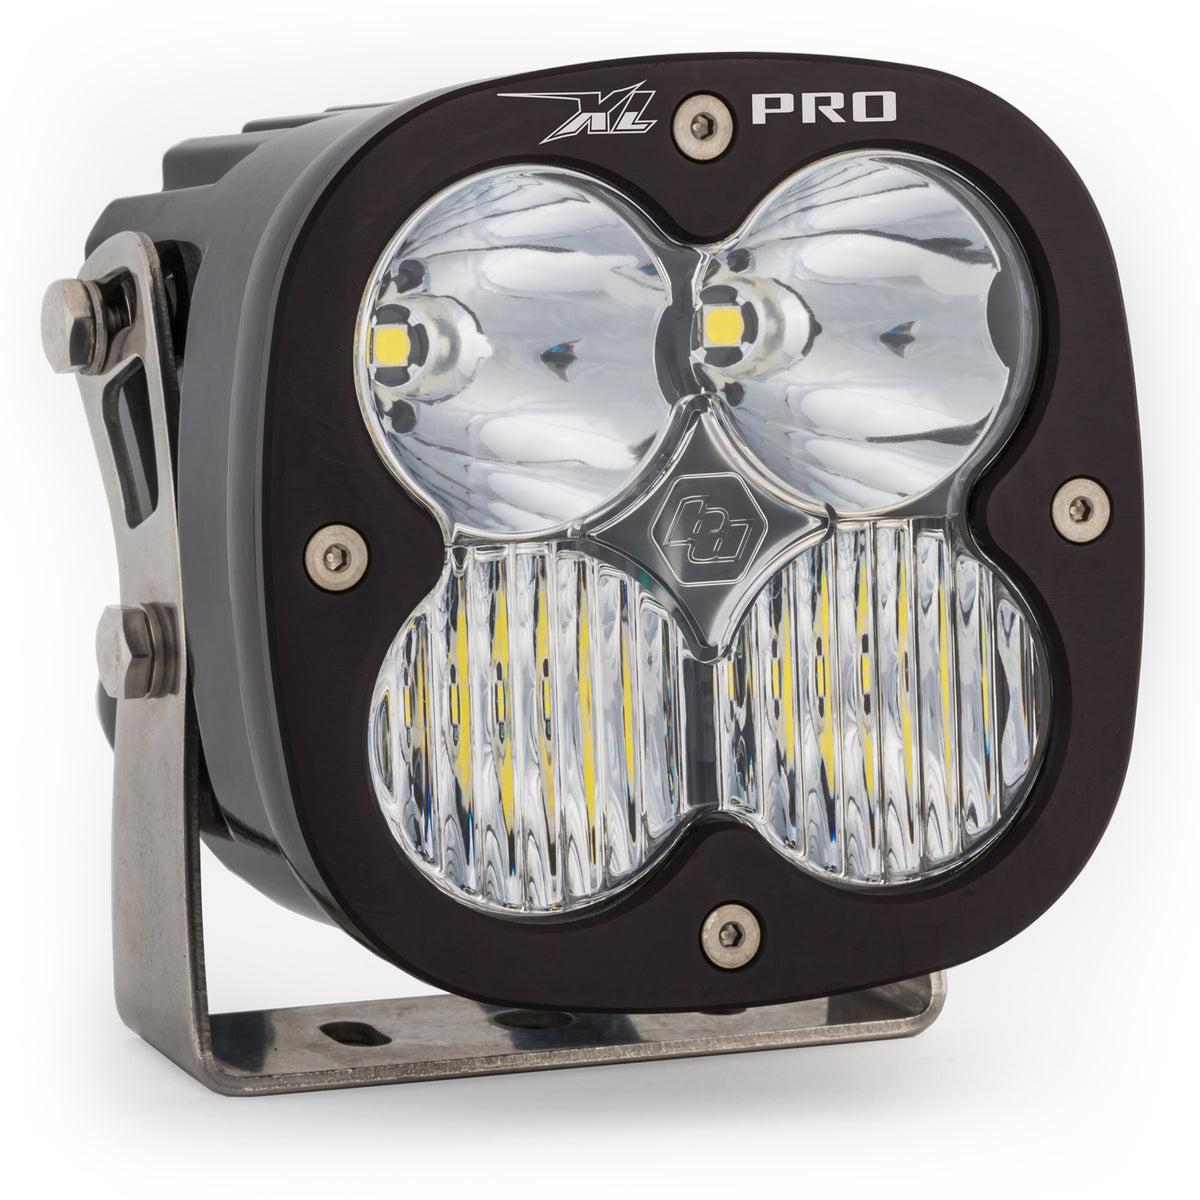 XL Pro, LED Driving/Combo